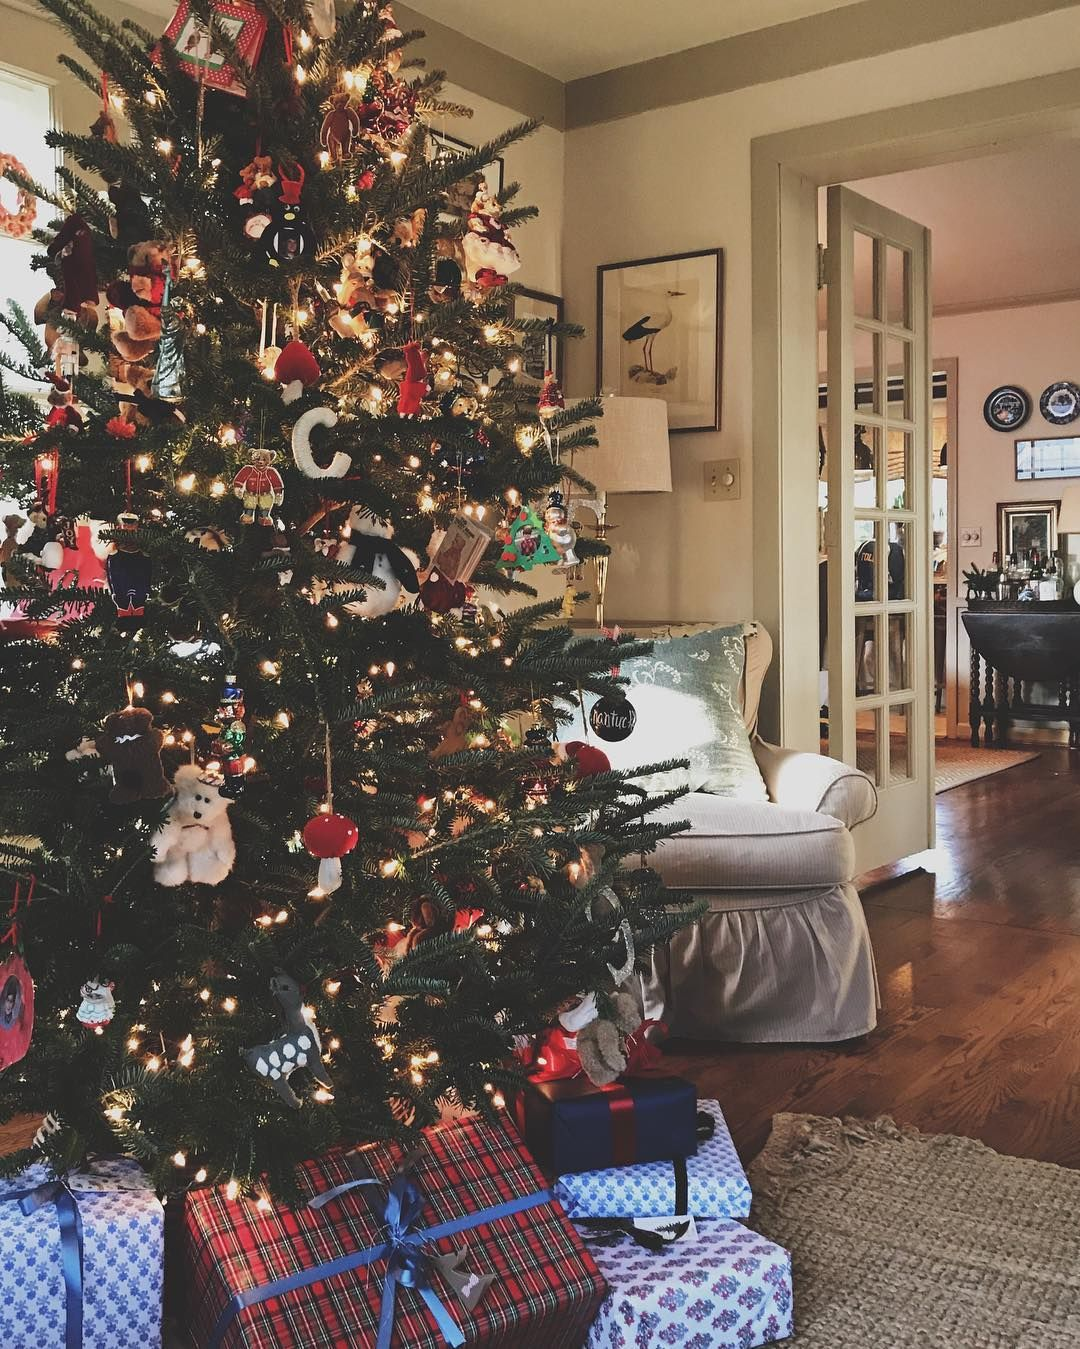 Tessa Foley On Instagram Saturday Plans Brunch With Santa And Baking A Gingerbread Cake Not House Oh And Christmas Home Farmhouse Christmas Holiday Fun